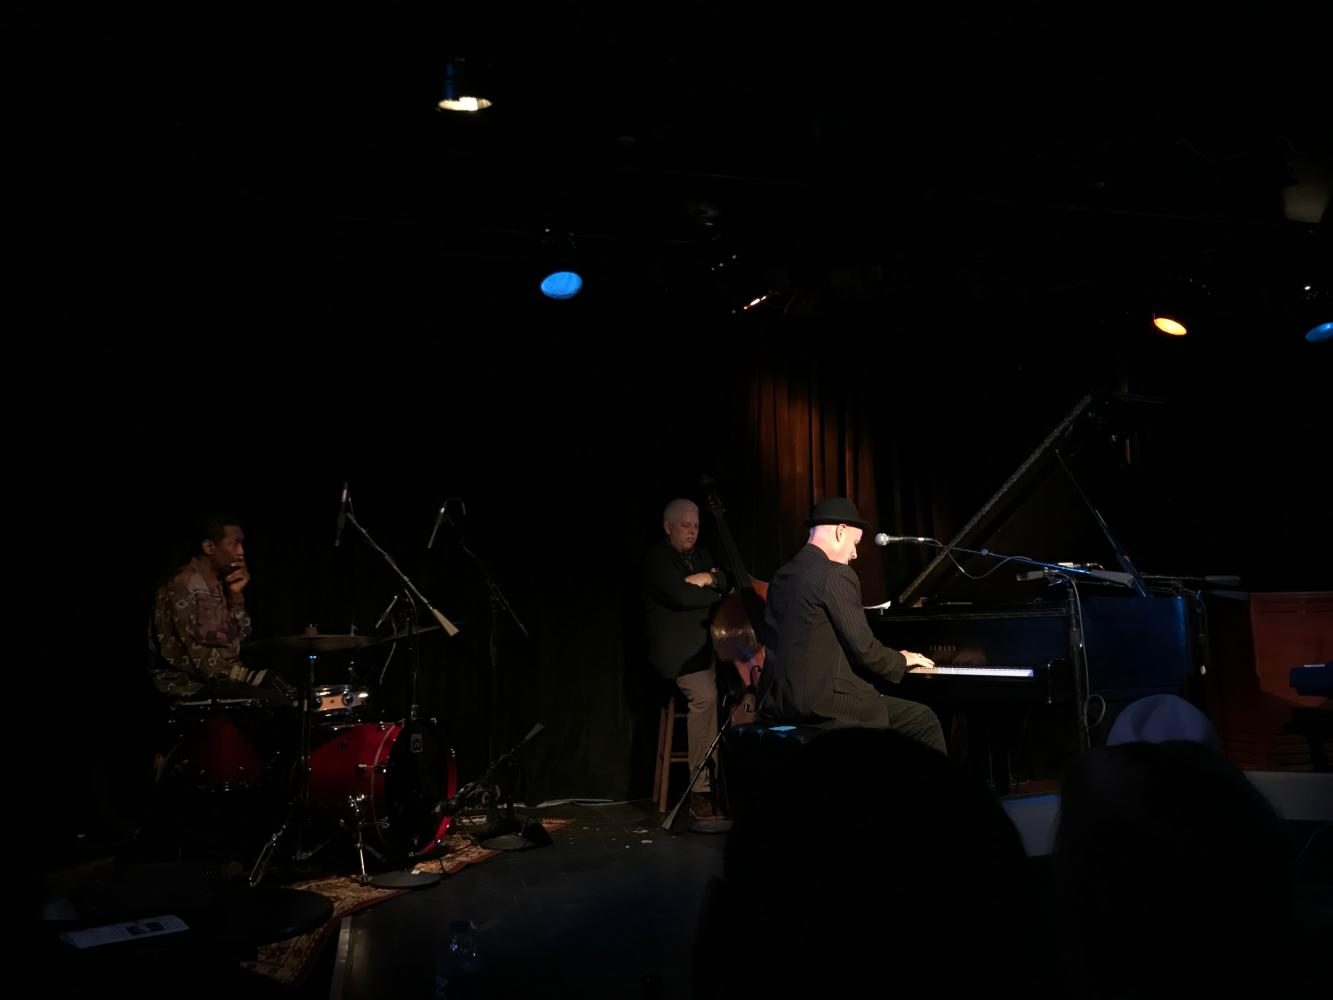 Al+Hill+plays+a+solo+as+Larry+King+and+Paul+Keller+look+on.+Hill%27s+performance+kicked+off+the+night+on+a+high+note%2C+with+beautiful+piano+and+impressive+vocals.